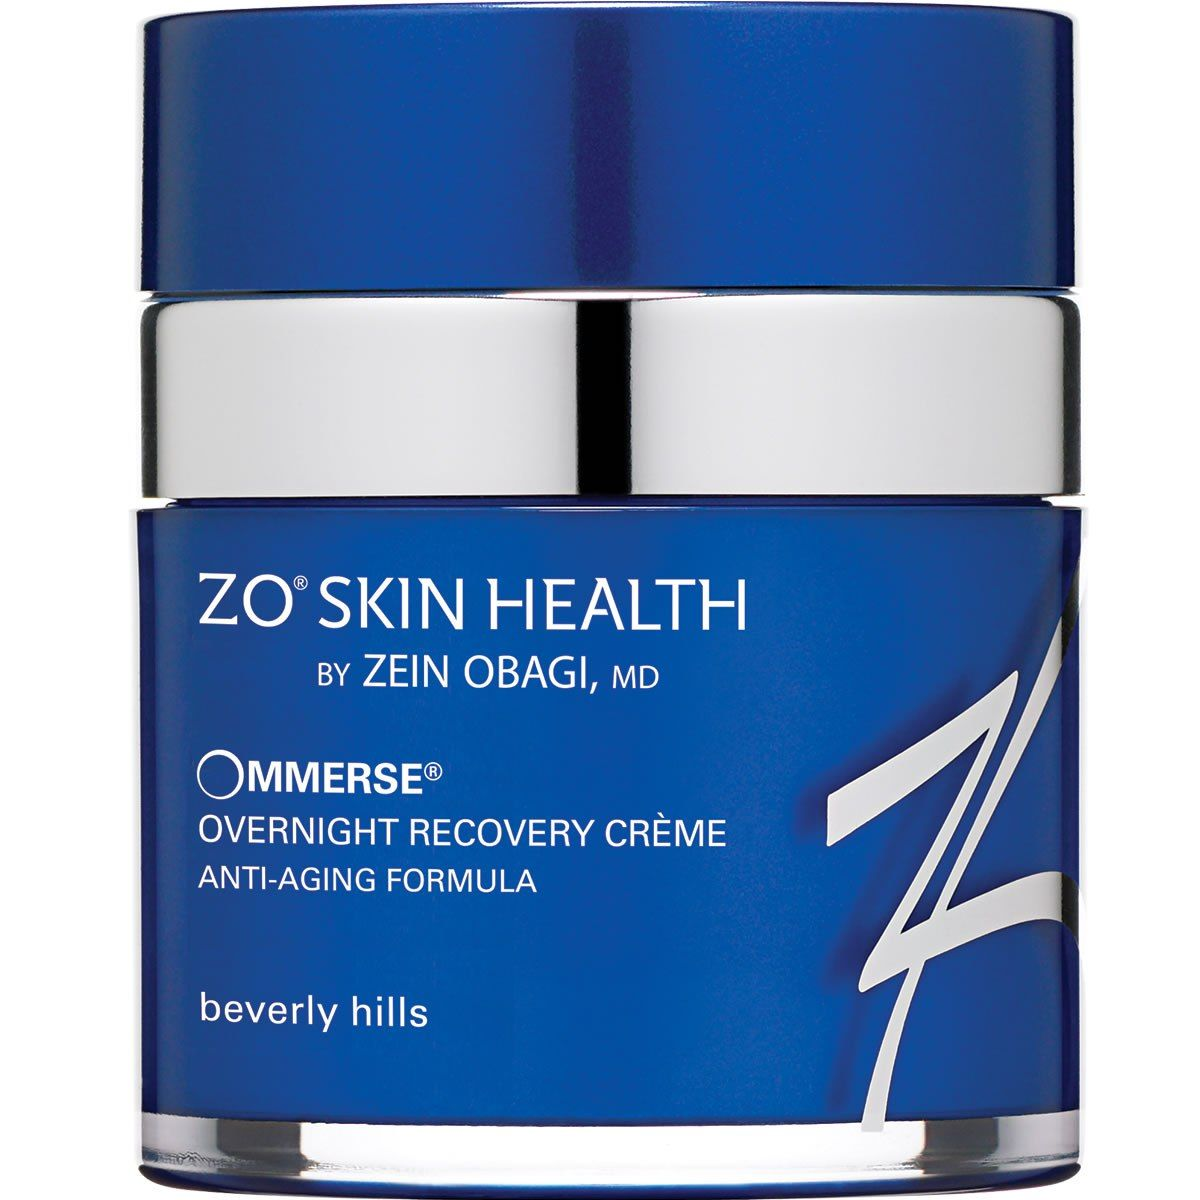 Ommerse® Overnight Recovery Creme Best natural skin care